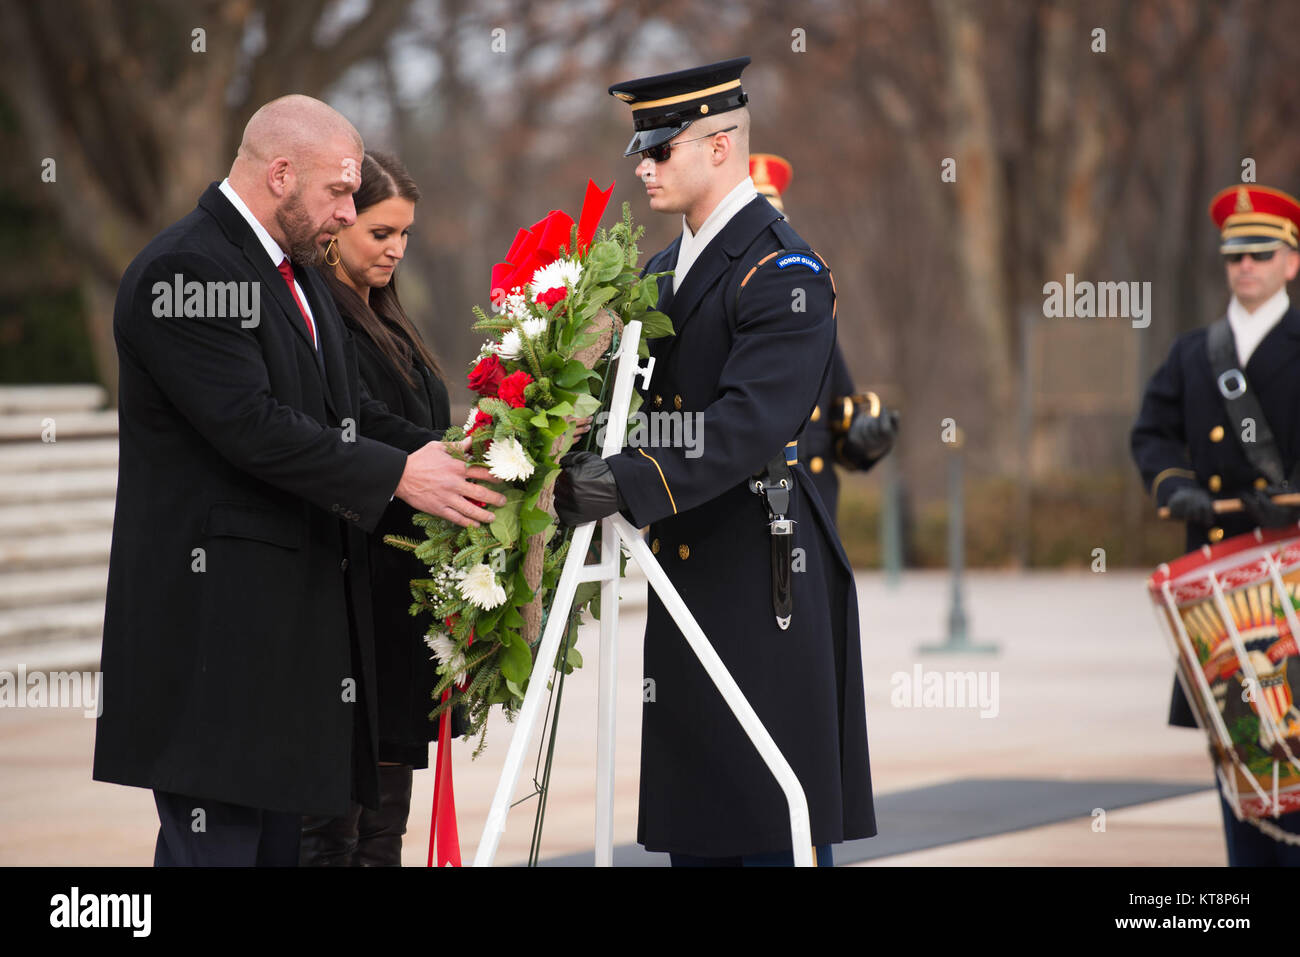 """From the left, WWE Paul """"Triple H"""" Levesque and WWE Chief Brand Officer Stephanie McMahon place a wreath at the - Stock Image"""